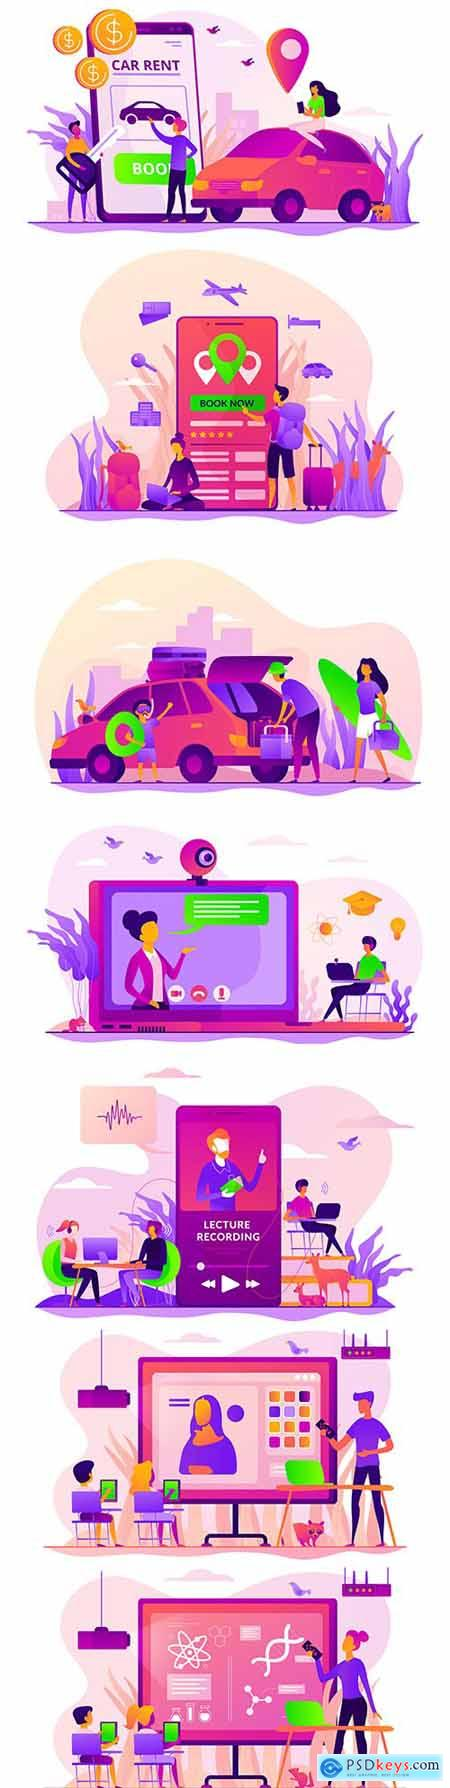 Science and online lessons education flat concept illustrations